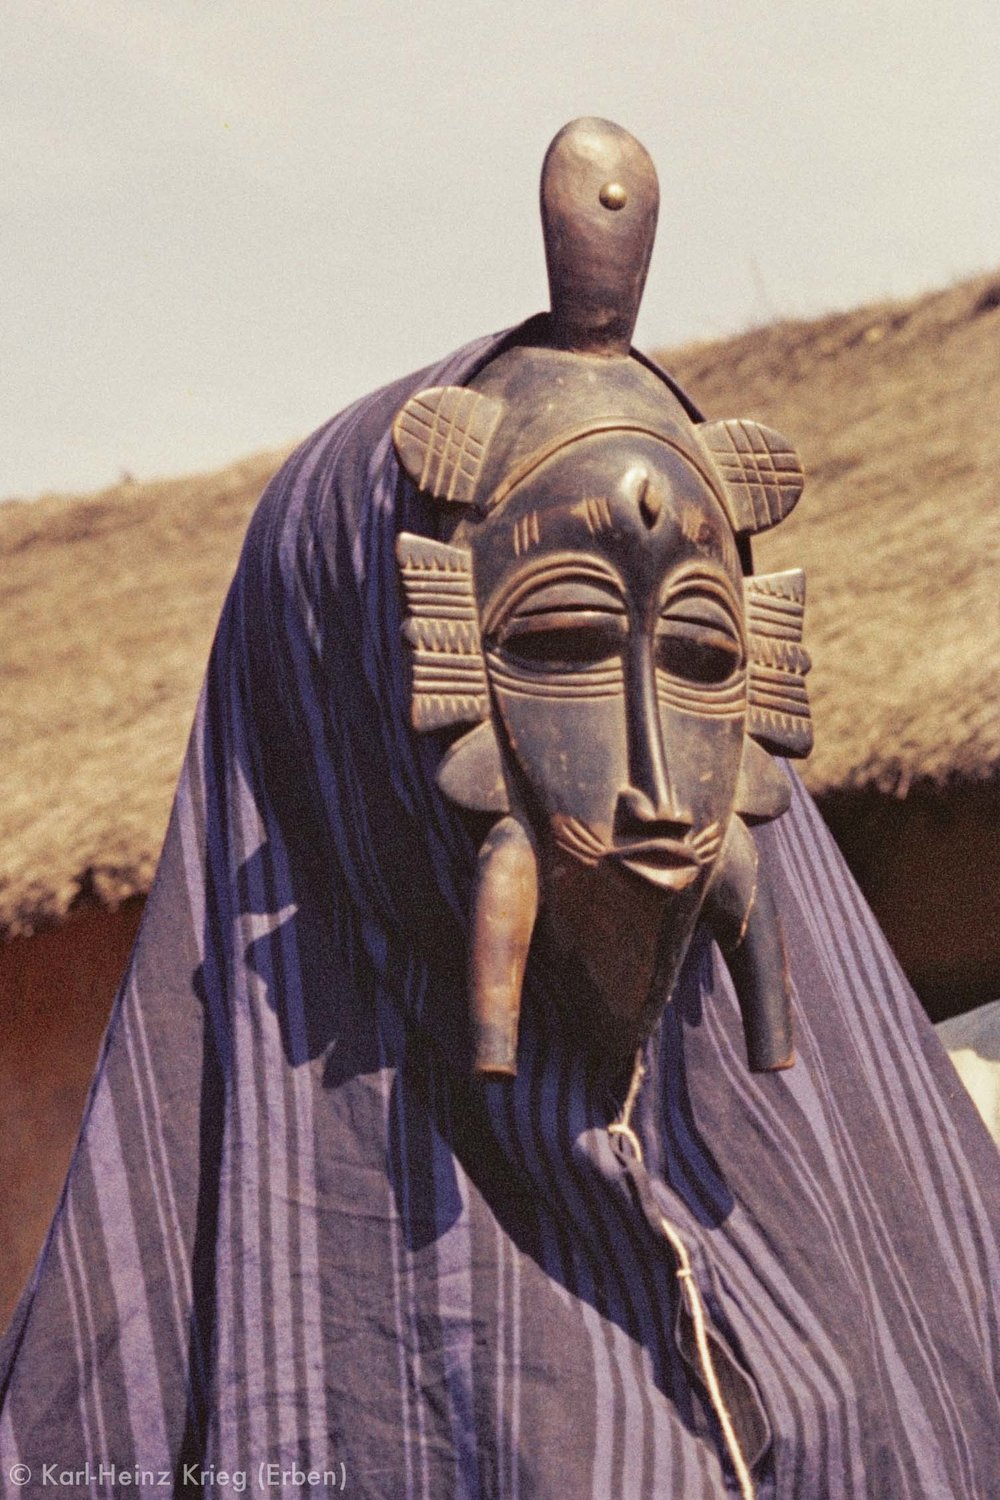 Dancer of the Senufo-group in Kolia wearing a mask carved by Kaparagnéné Koné. Photo: Karl-Heinz Krieg, between 1963 and 1974